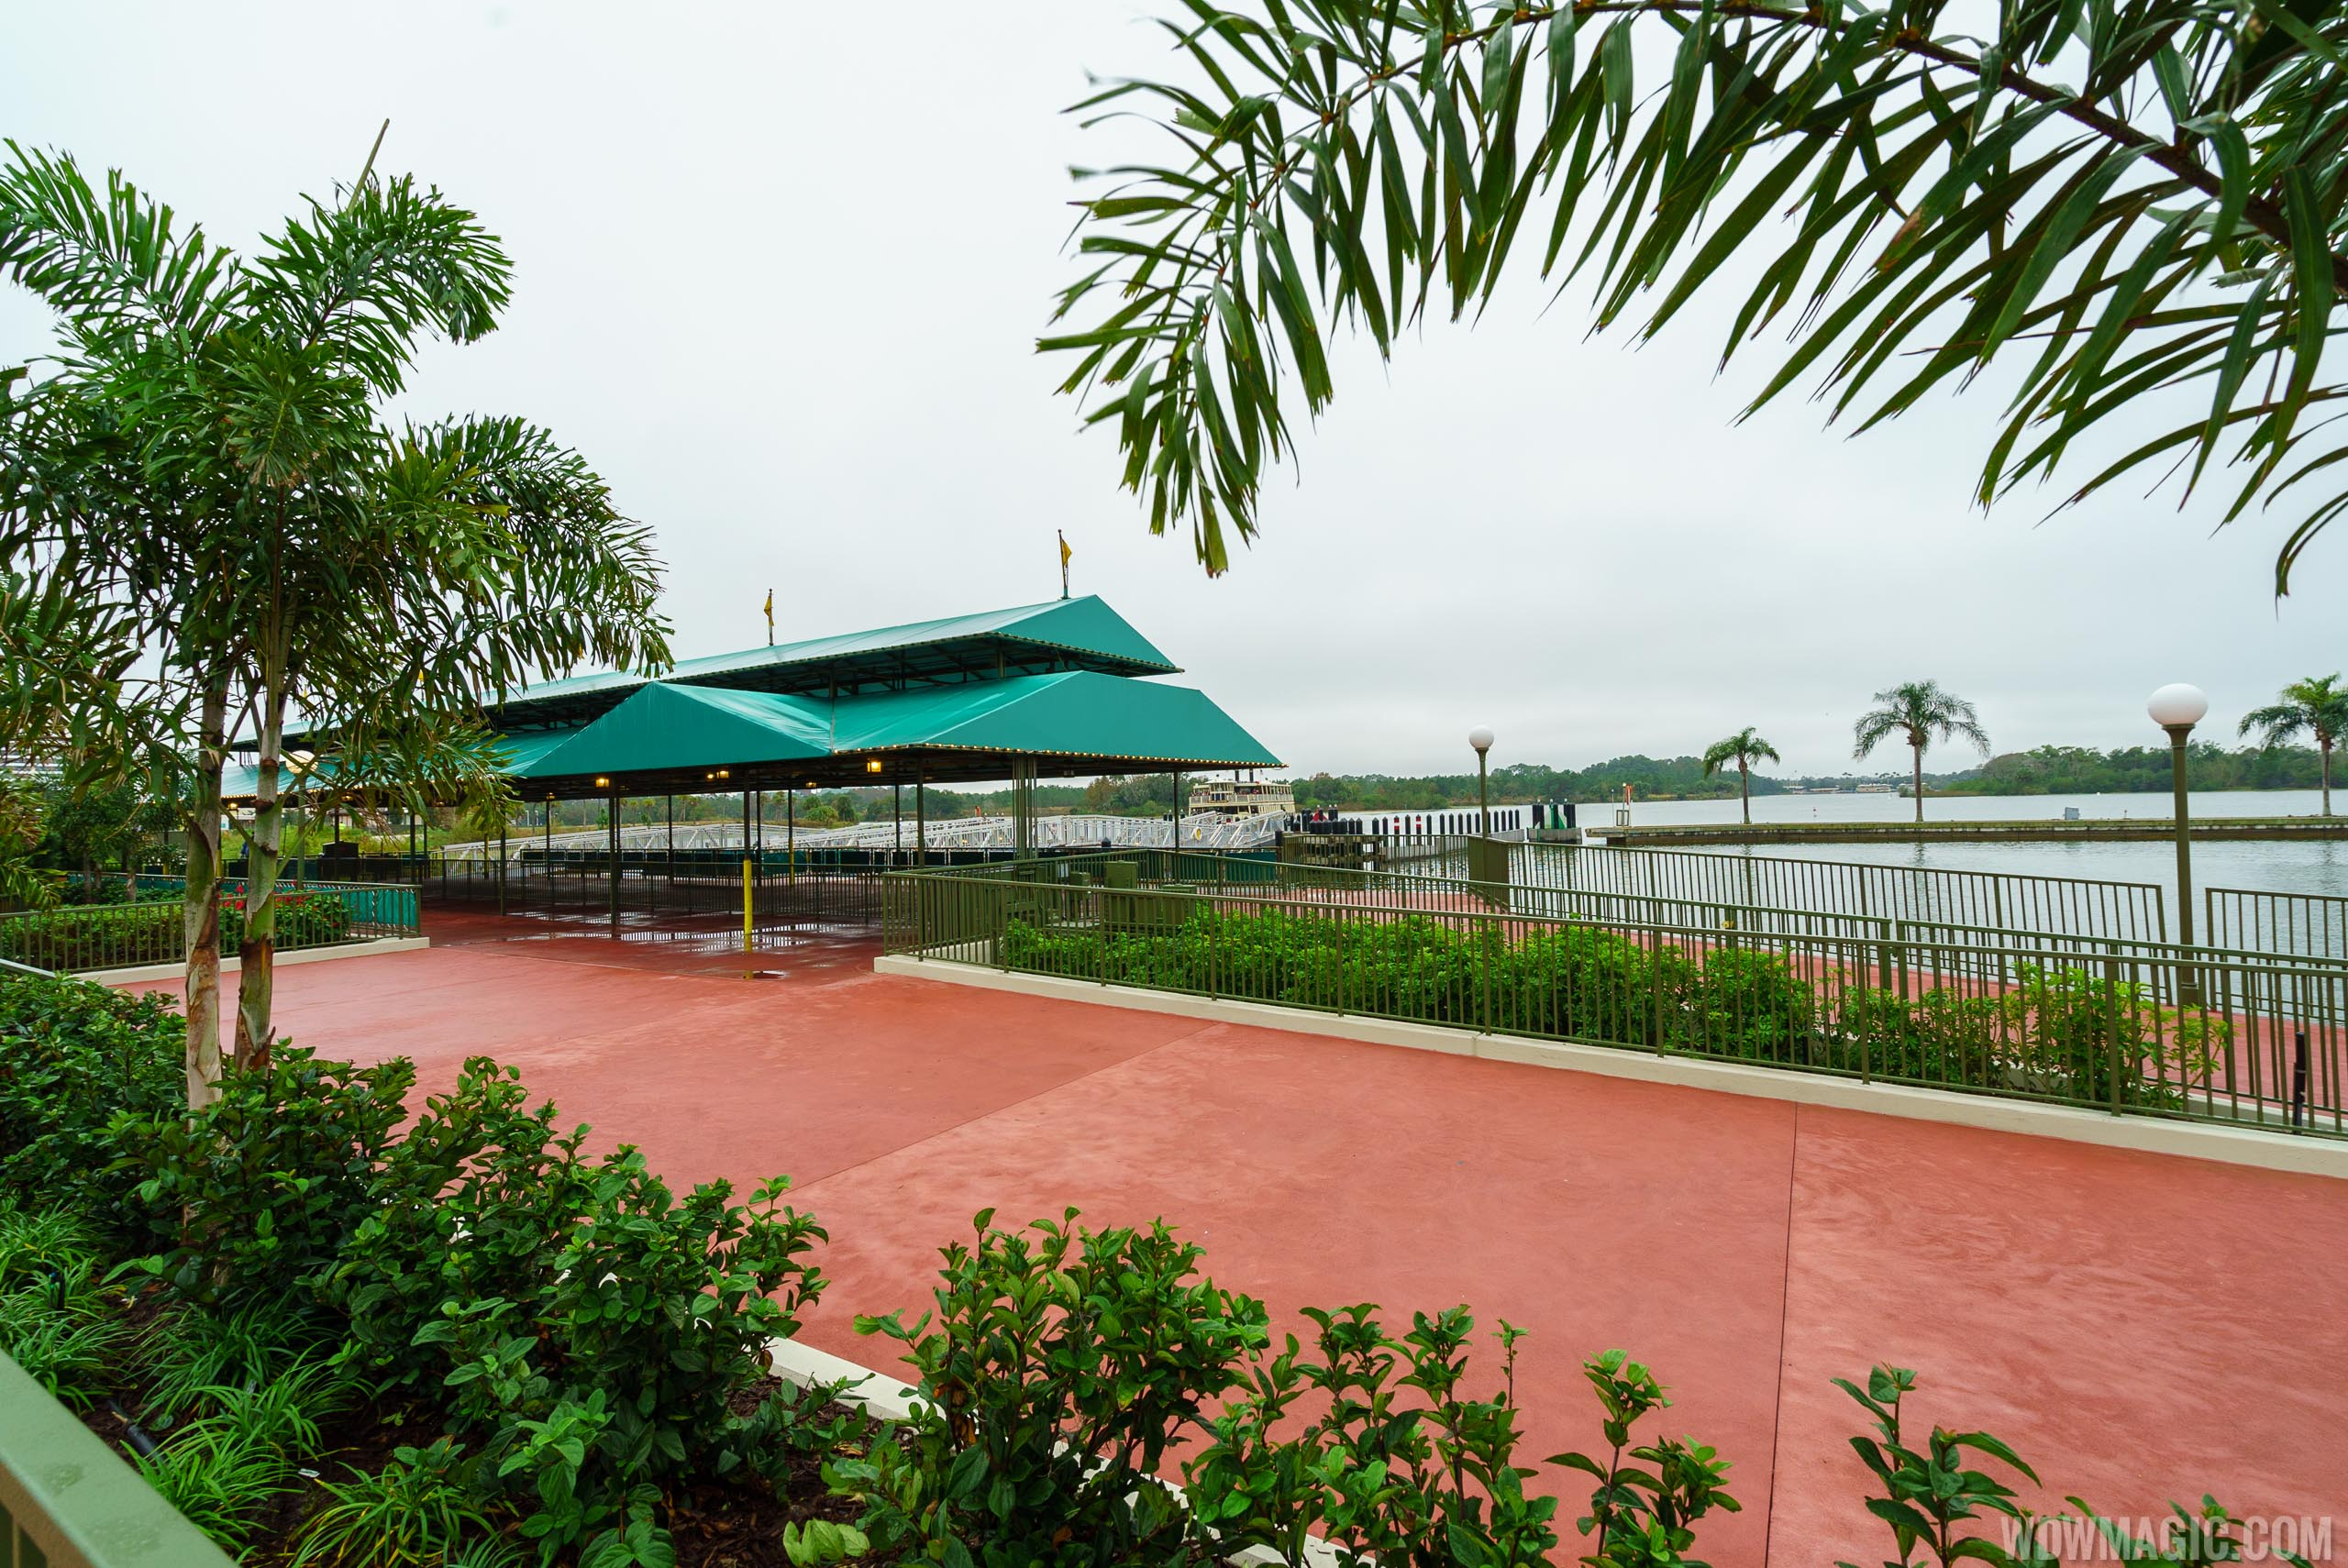 The Ferryboat dock area